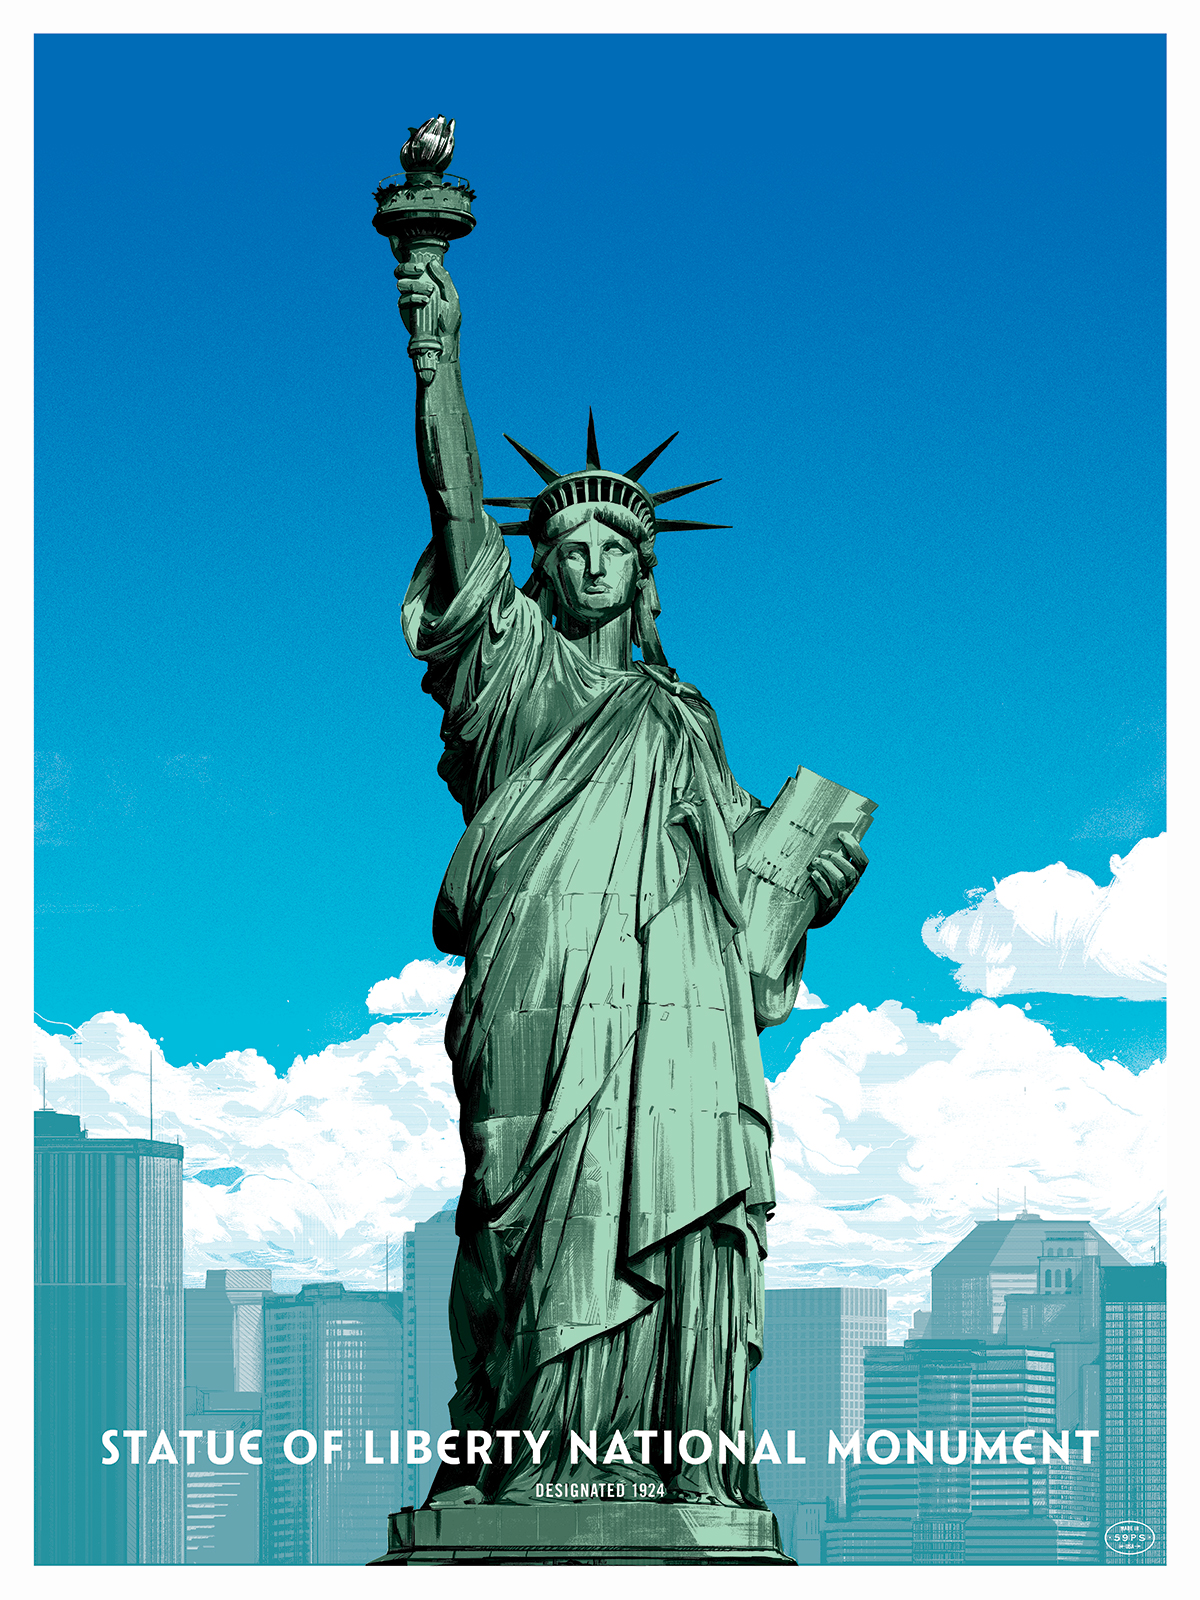 THE STATUE OF LIBERTY - Limited edition, screen-printed poster.Available in the shop